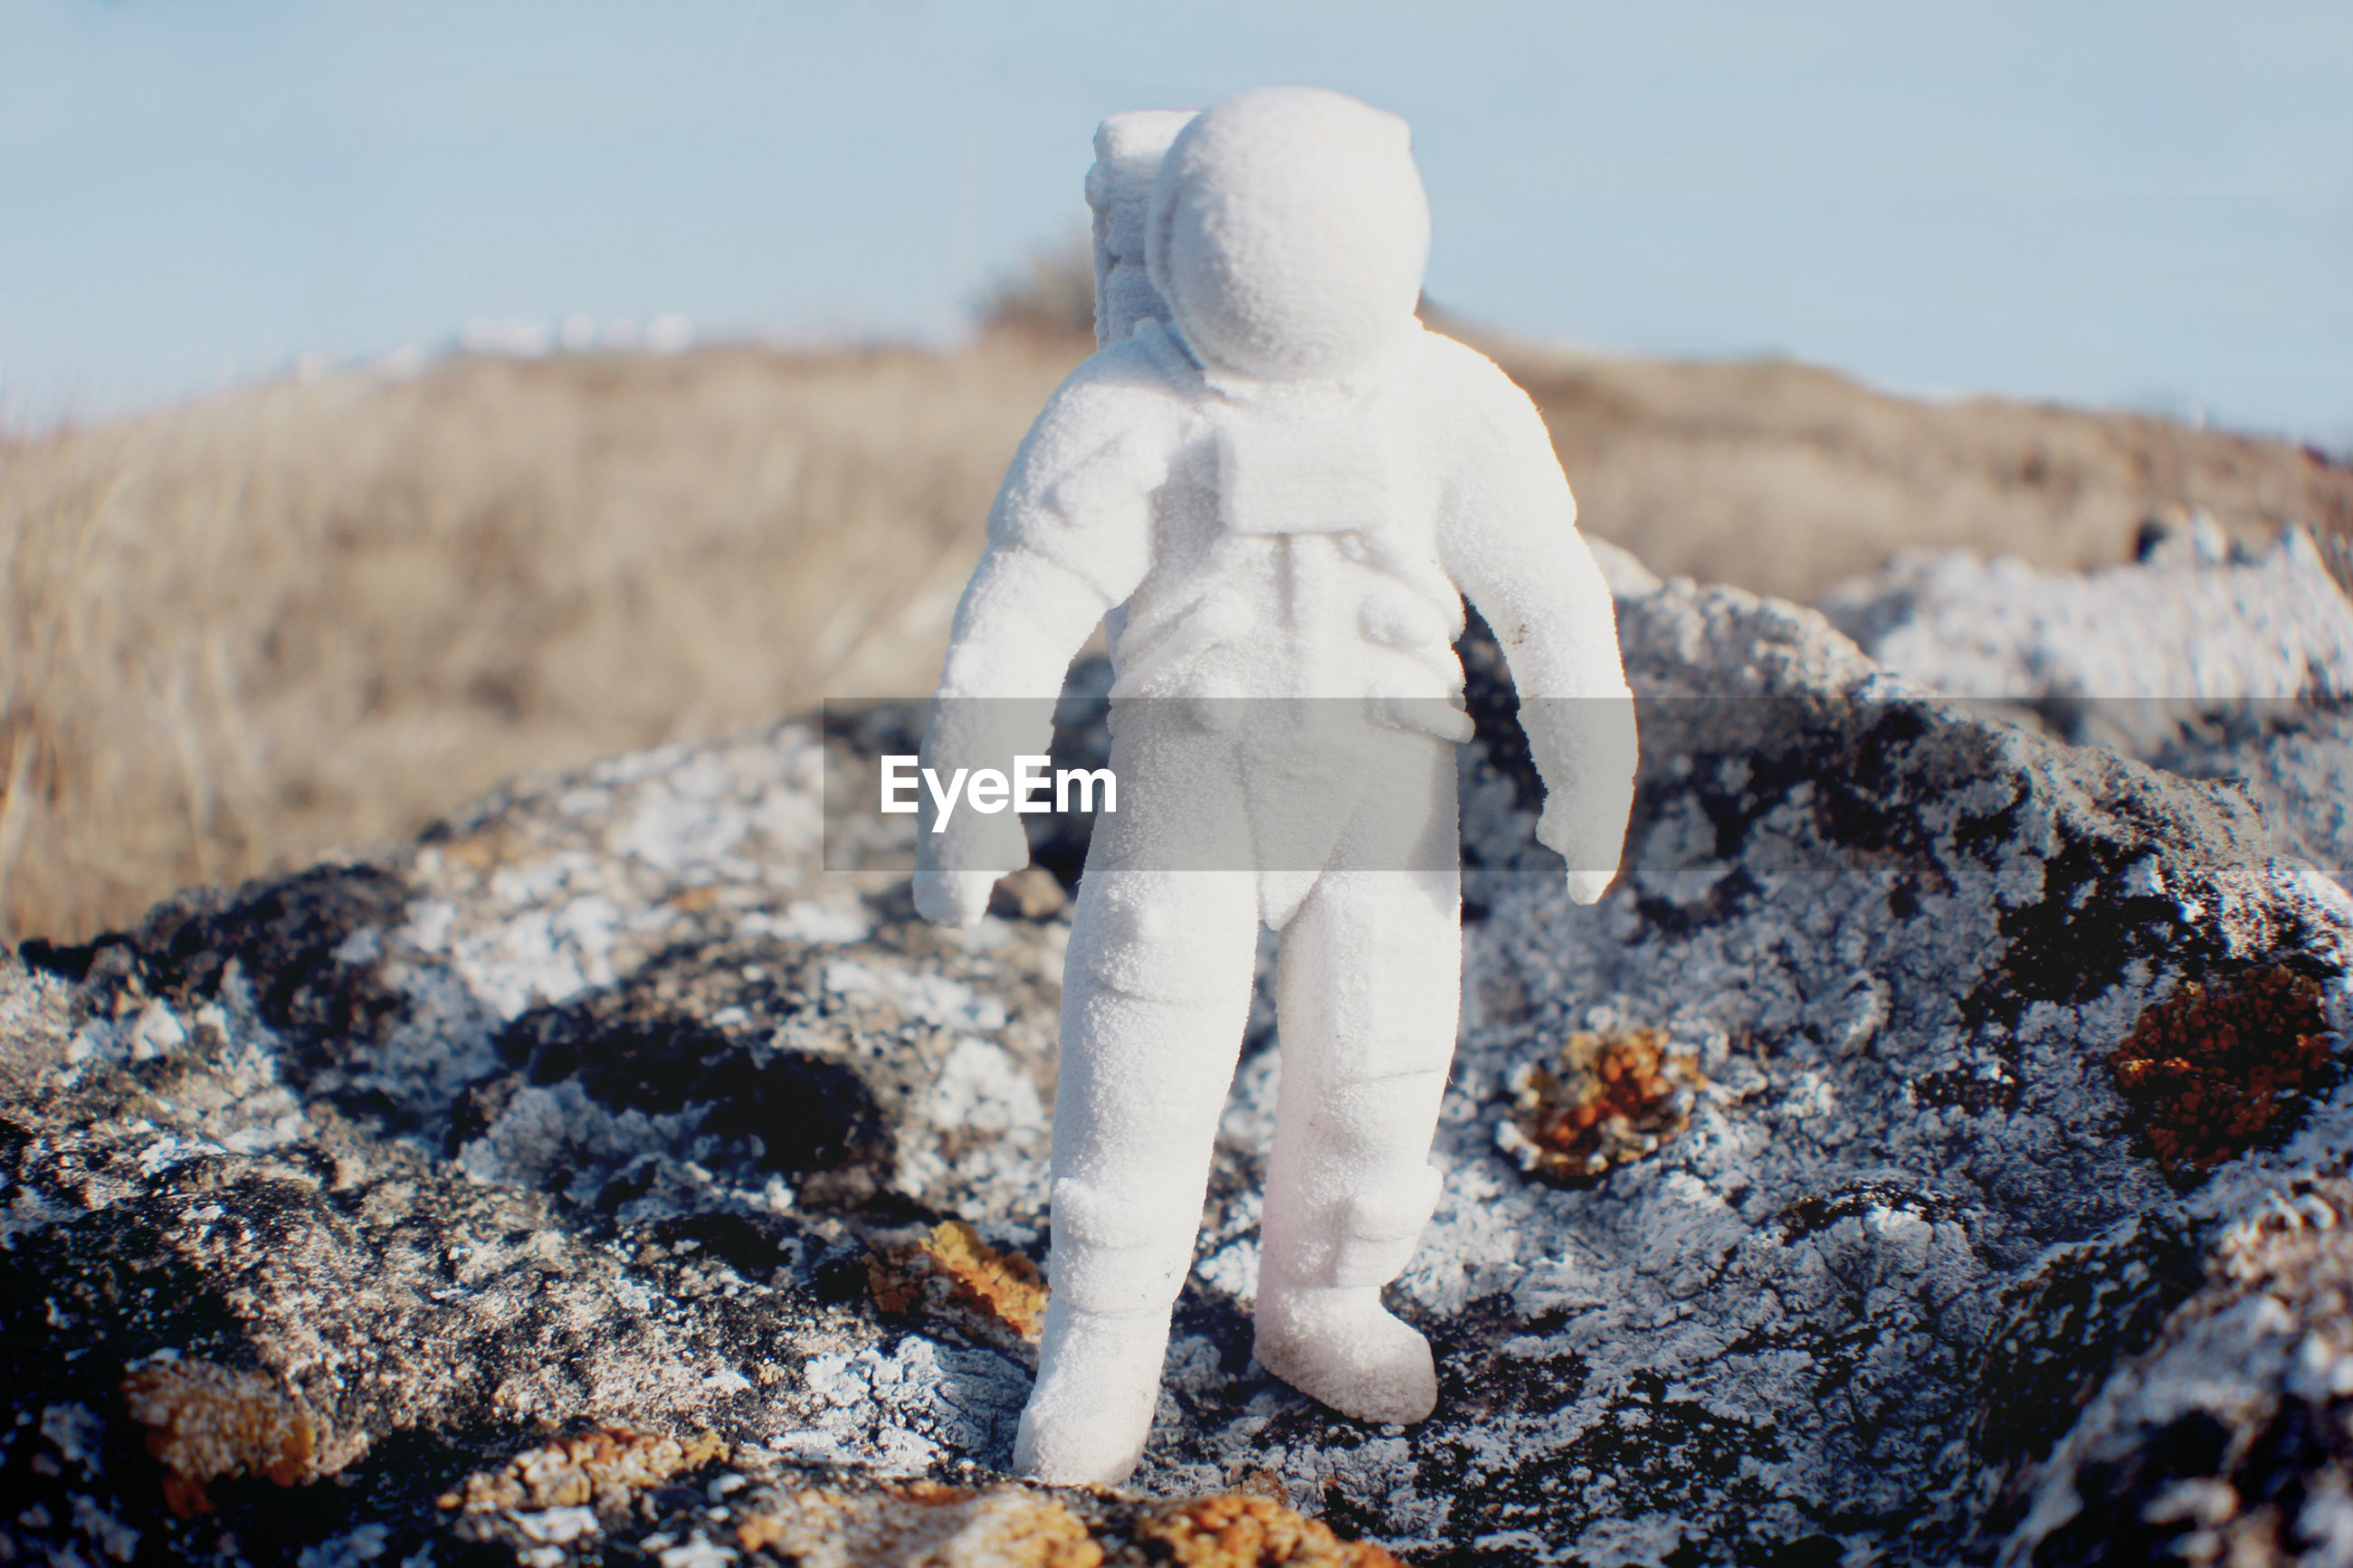 Close-up of white astronaut figurine on field